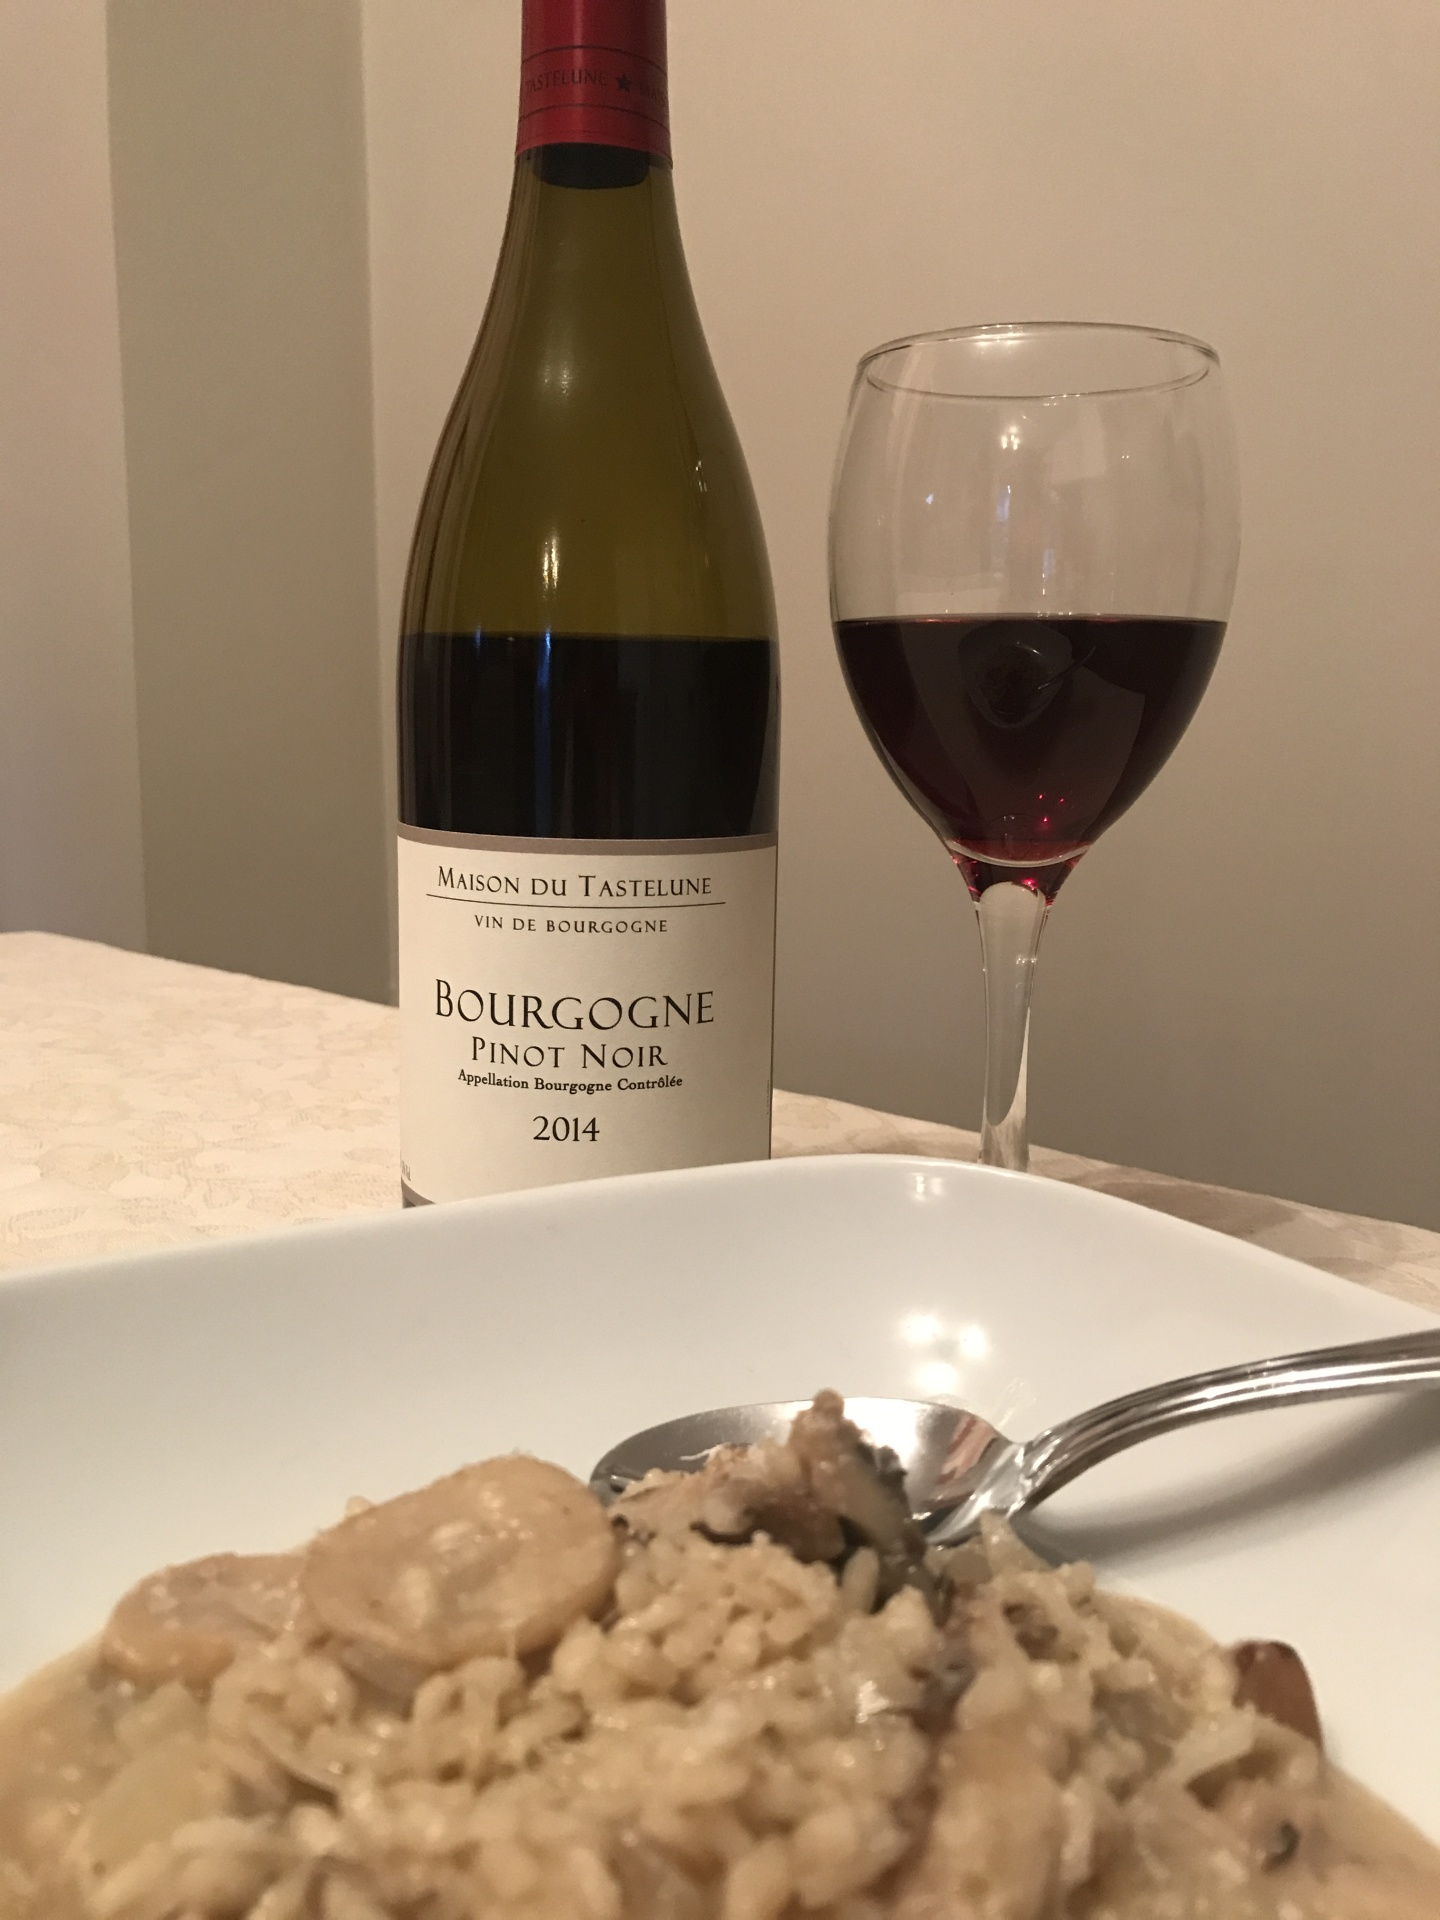 Creamy mushroom risotto and pinot noir from Burgundy